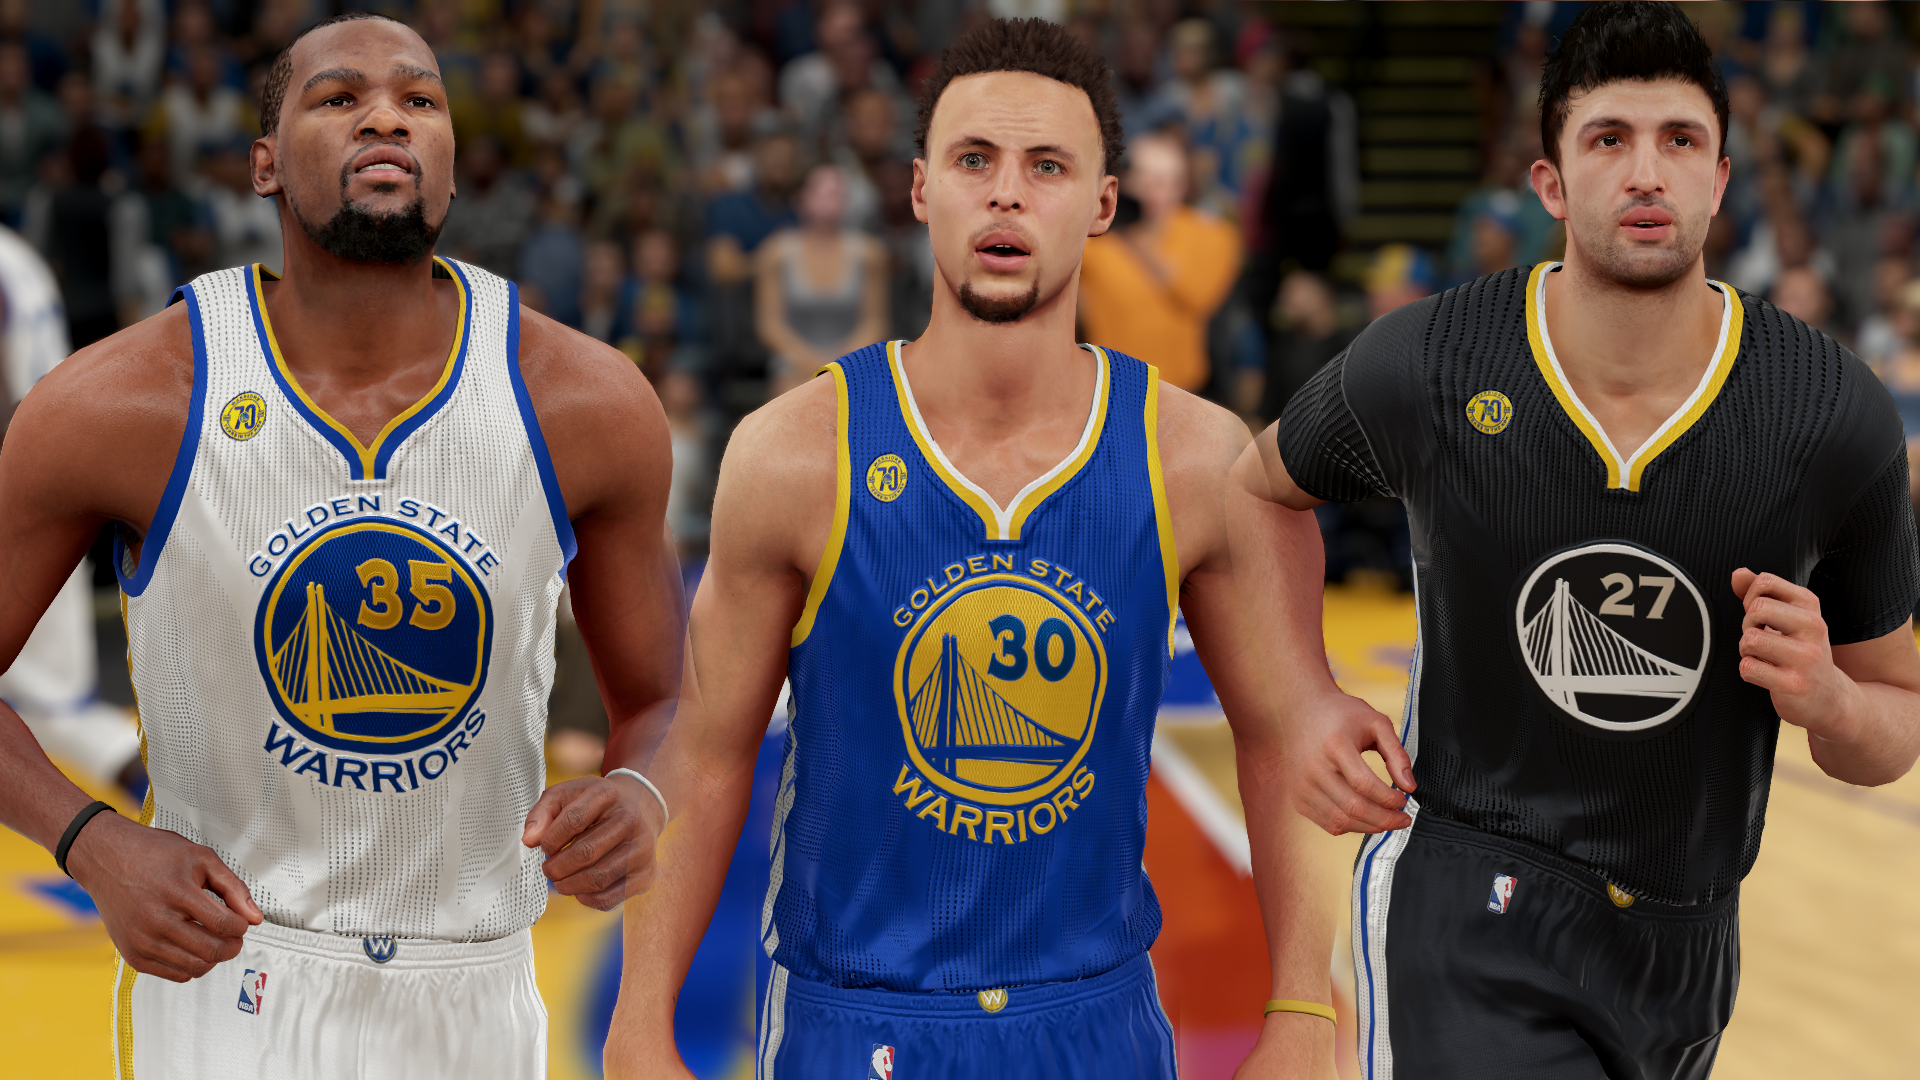 2e5c22f65005 nba 2k14 jerseys 2014 2015 golden state warriors jersey pack nba 2k14   golden state warriors jersey